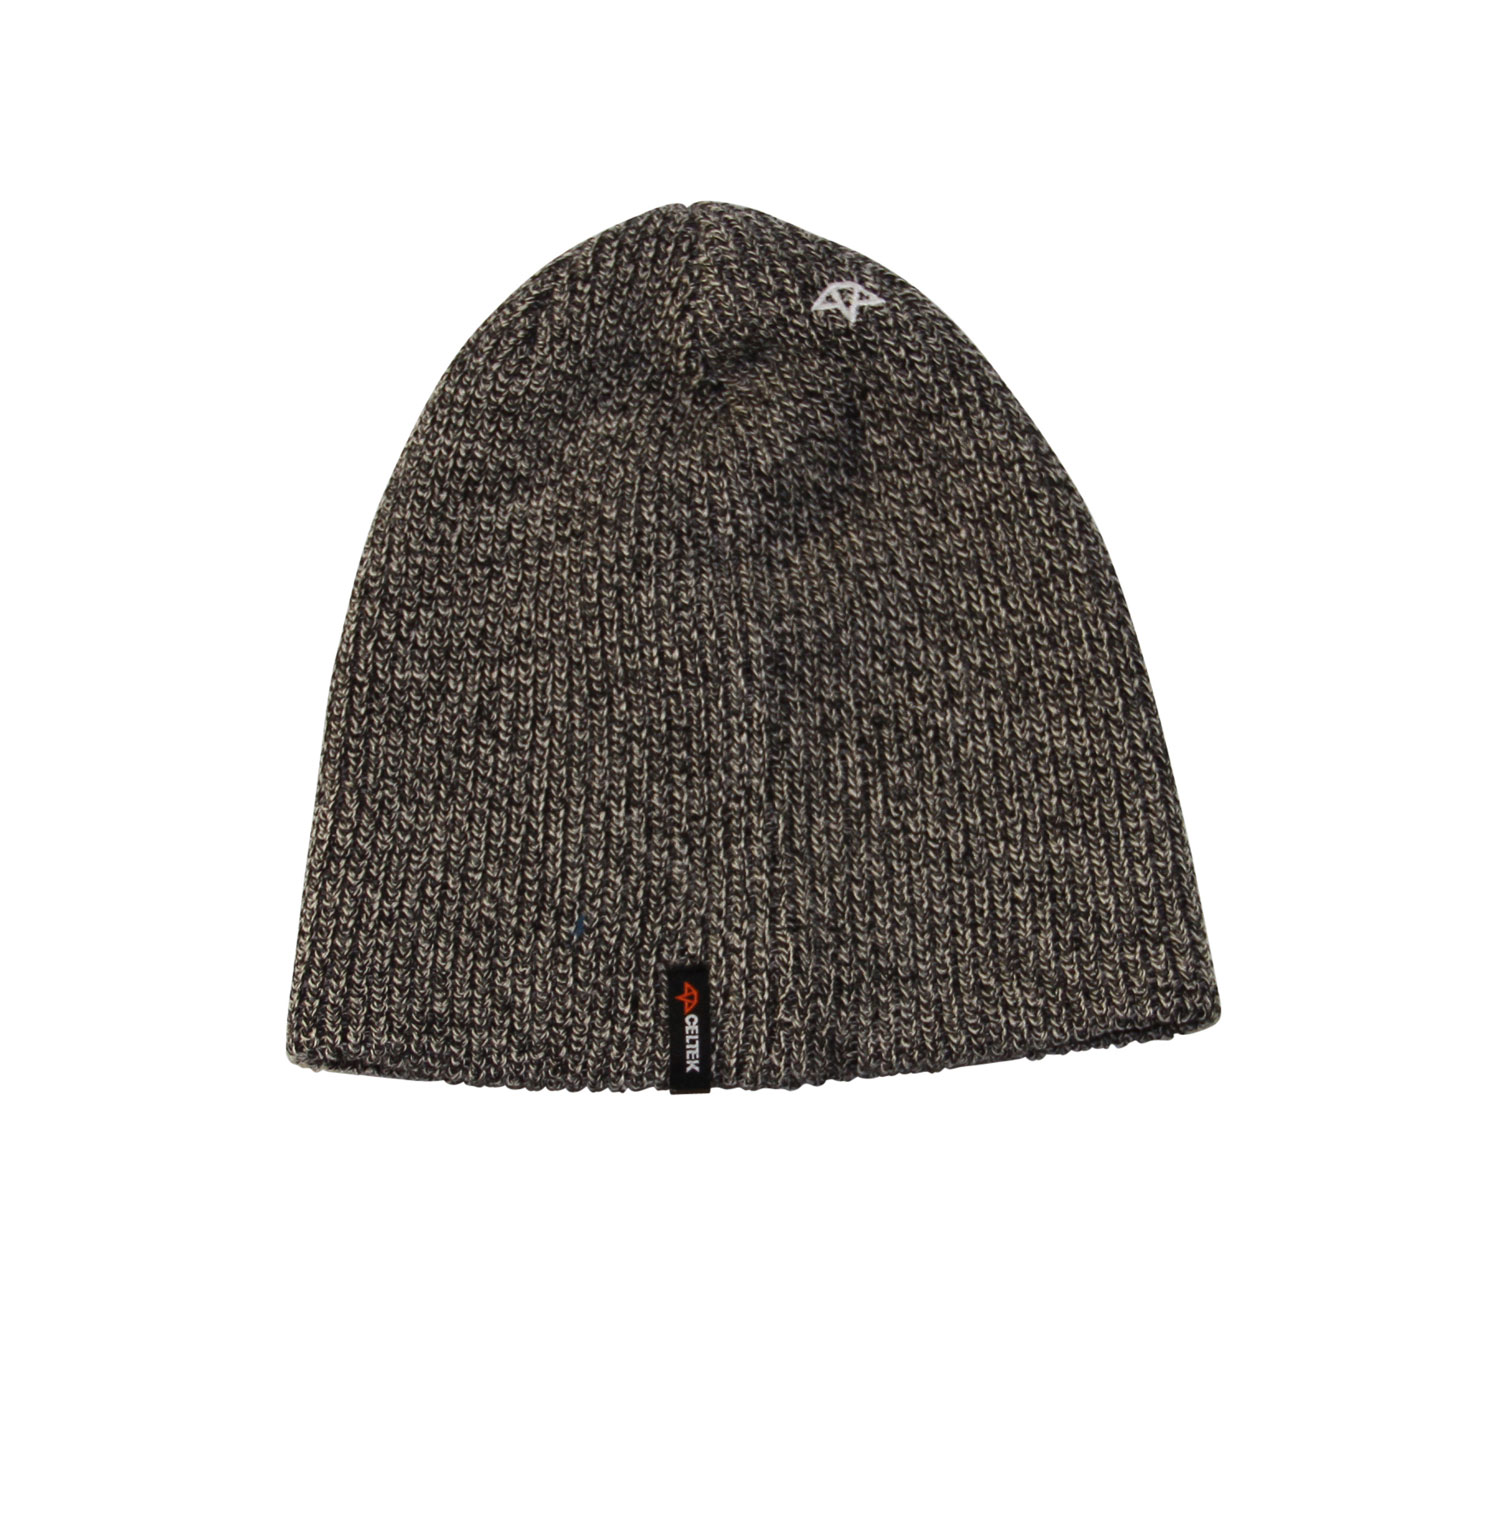 Key Features of the Celtek Clan Beanie: 100% Acrylic Knit Beanie Jacquarded Clip Label Embroidered Logo Hit - $13.95